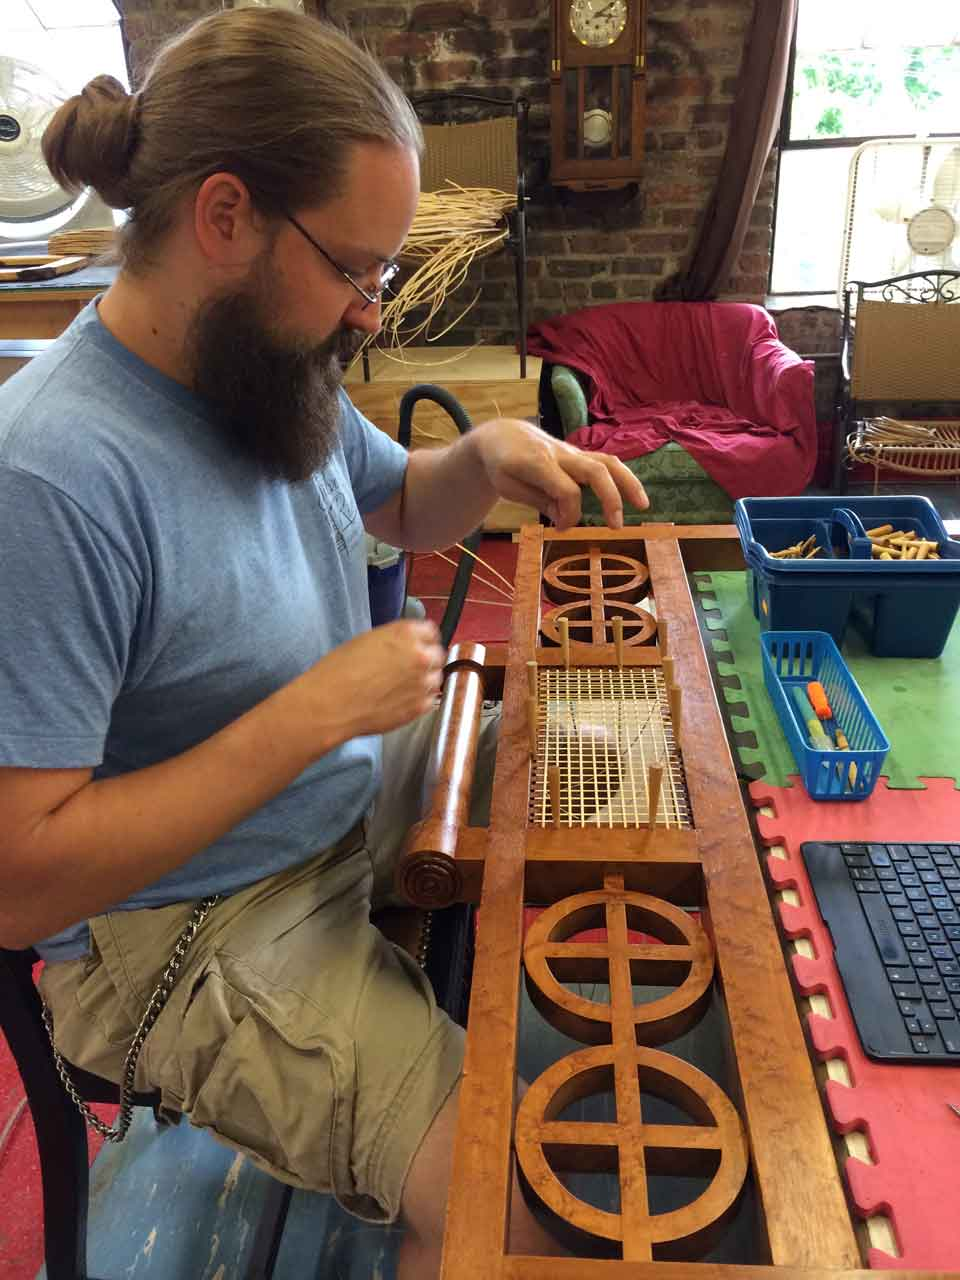 Dave-laced-caning-mirror-frame